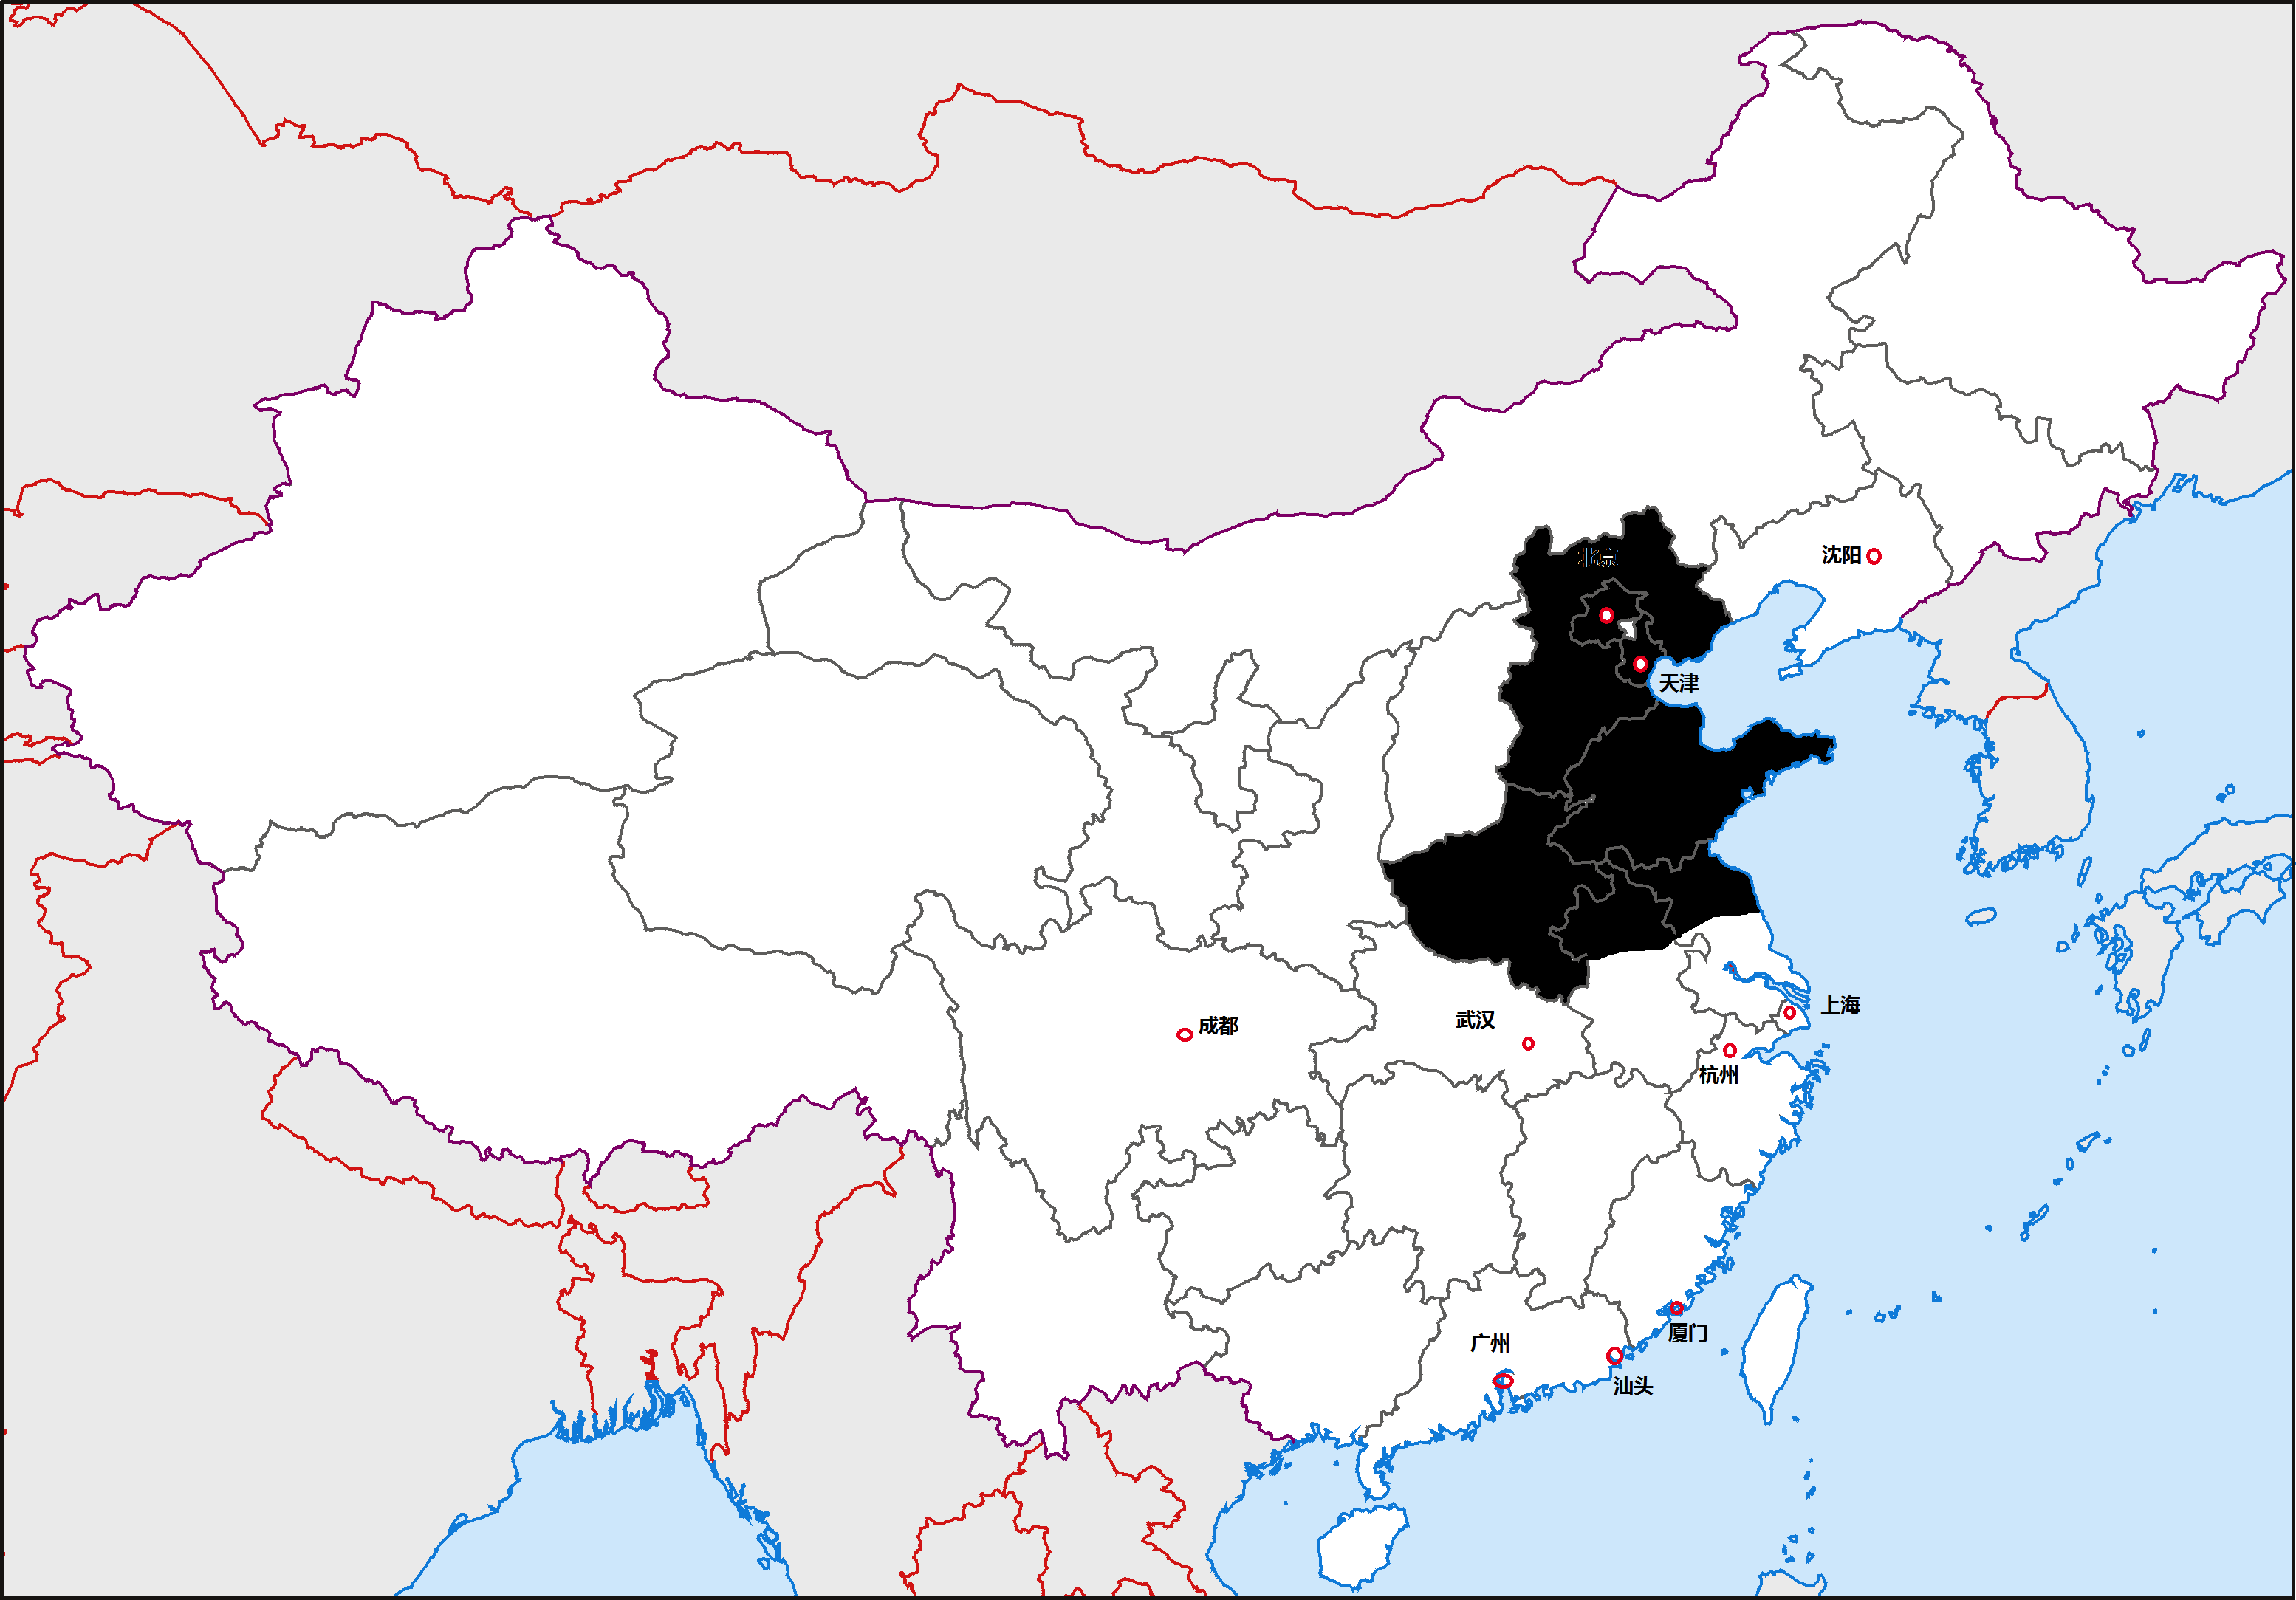 north china plain on map 12 Regions Of China The North China Plain The Diplomat north china plain on map